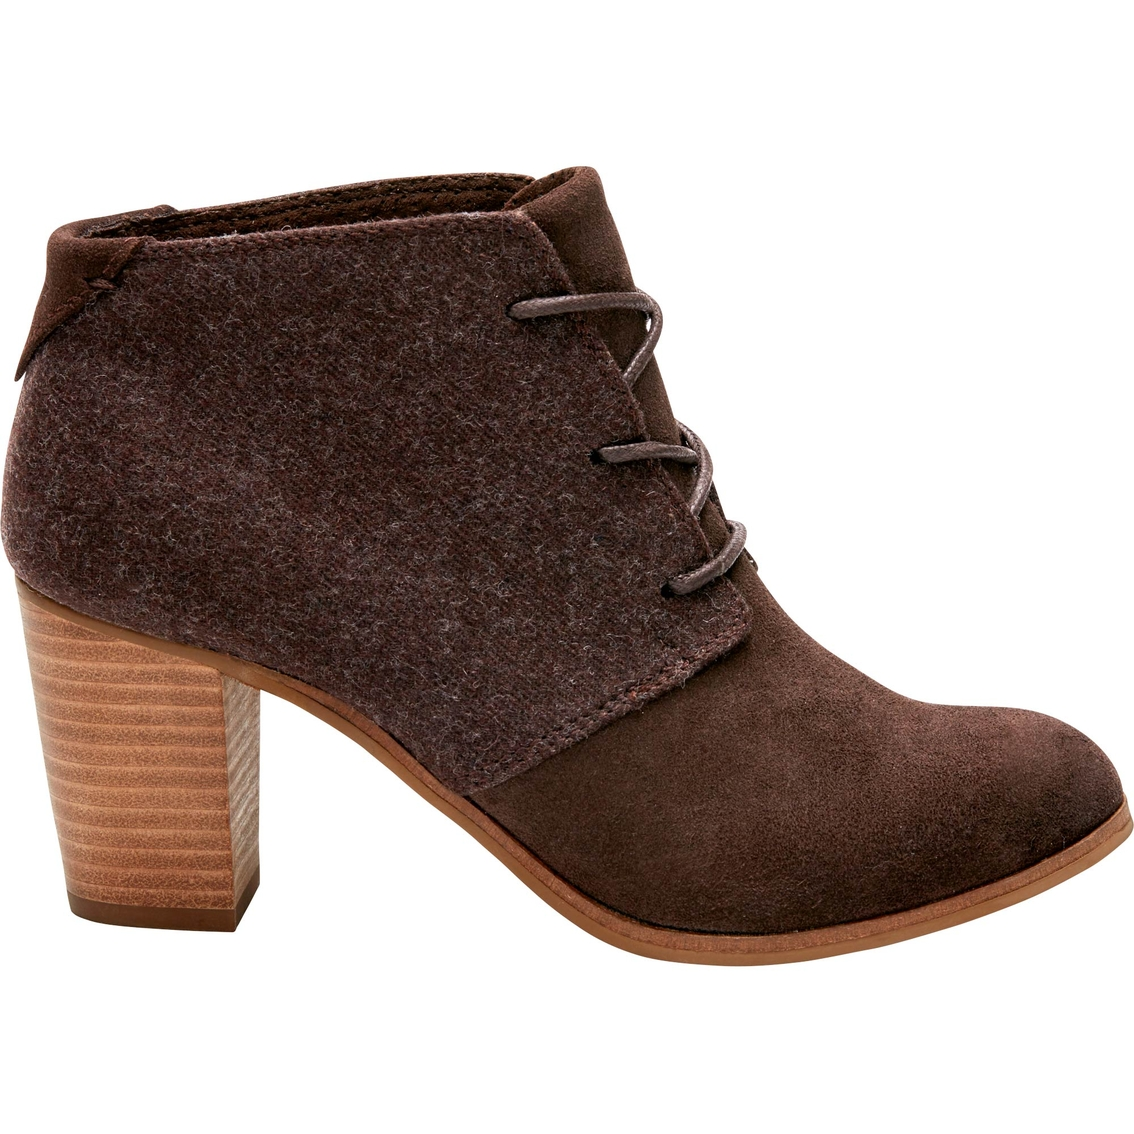 9b6bf795585 Toms Lunata Suede wool Lace-up Bootie